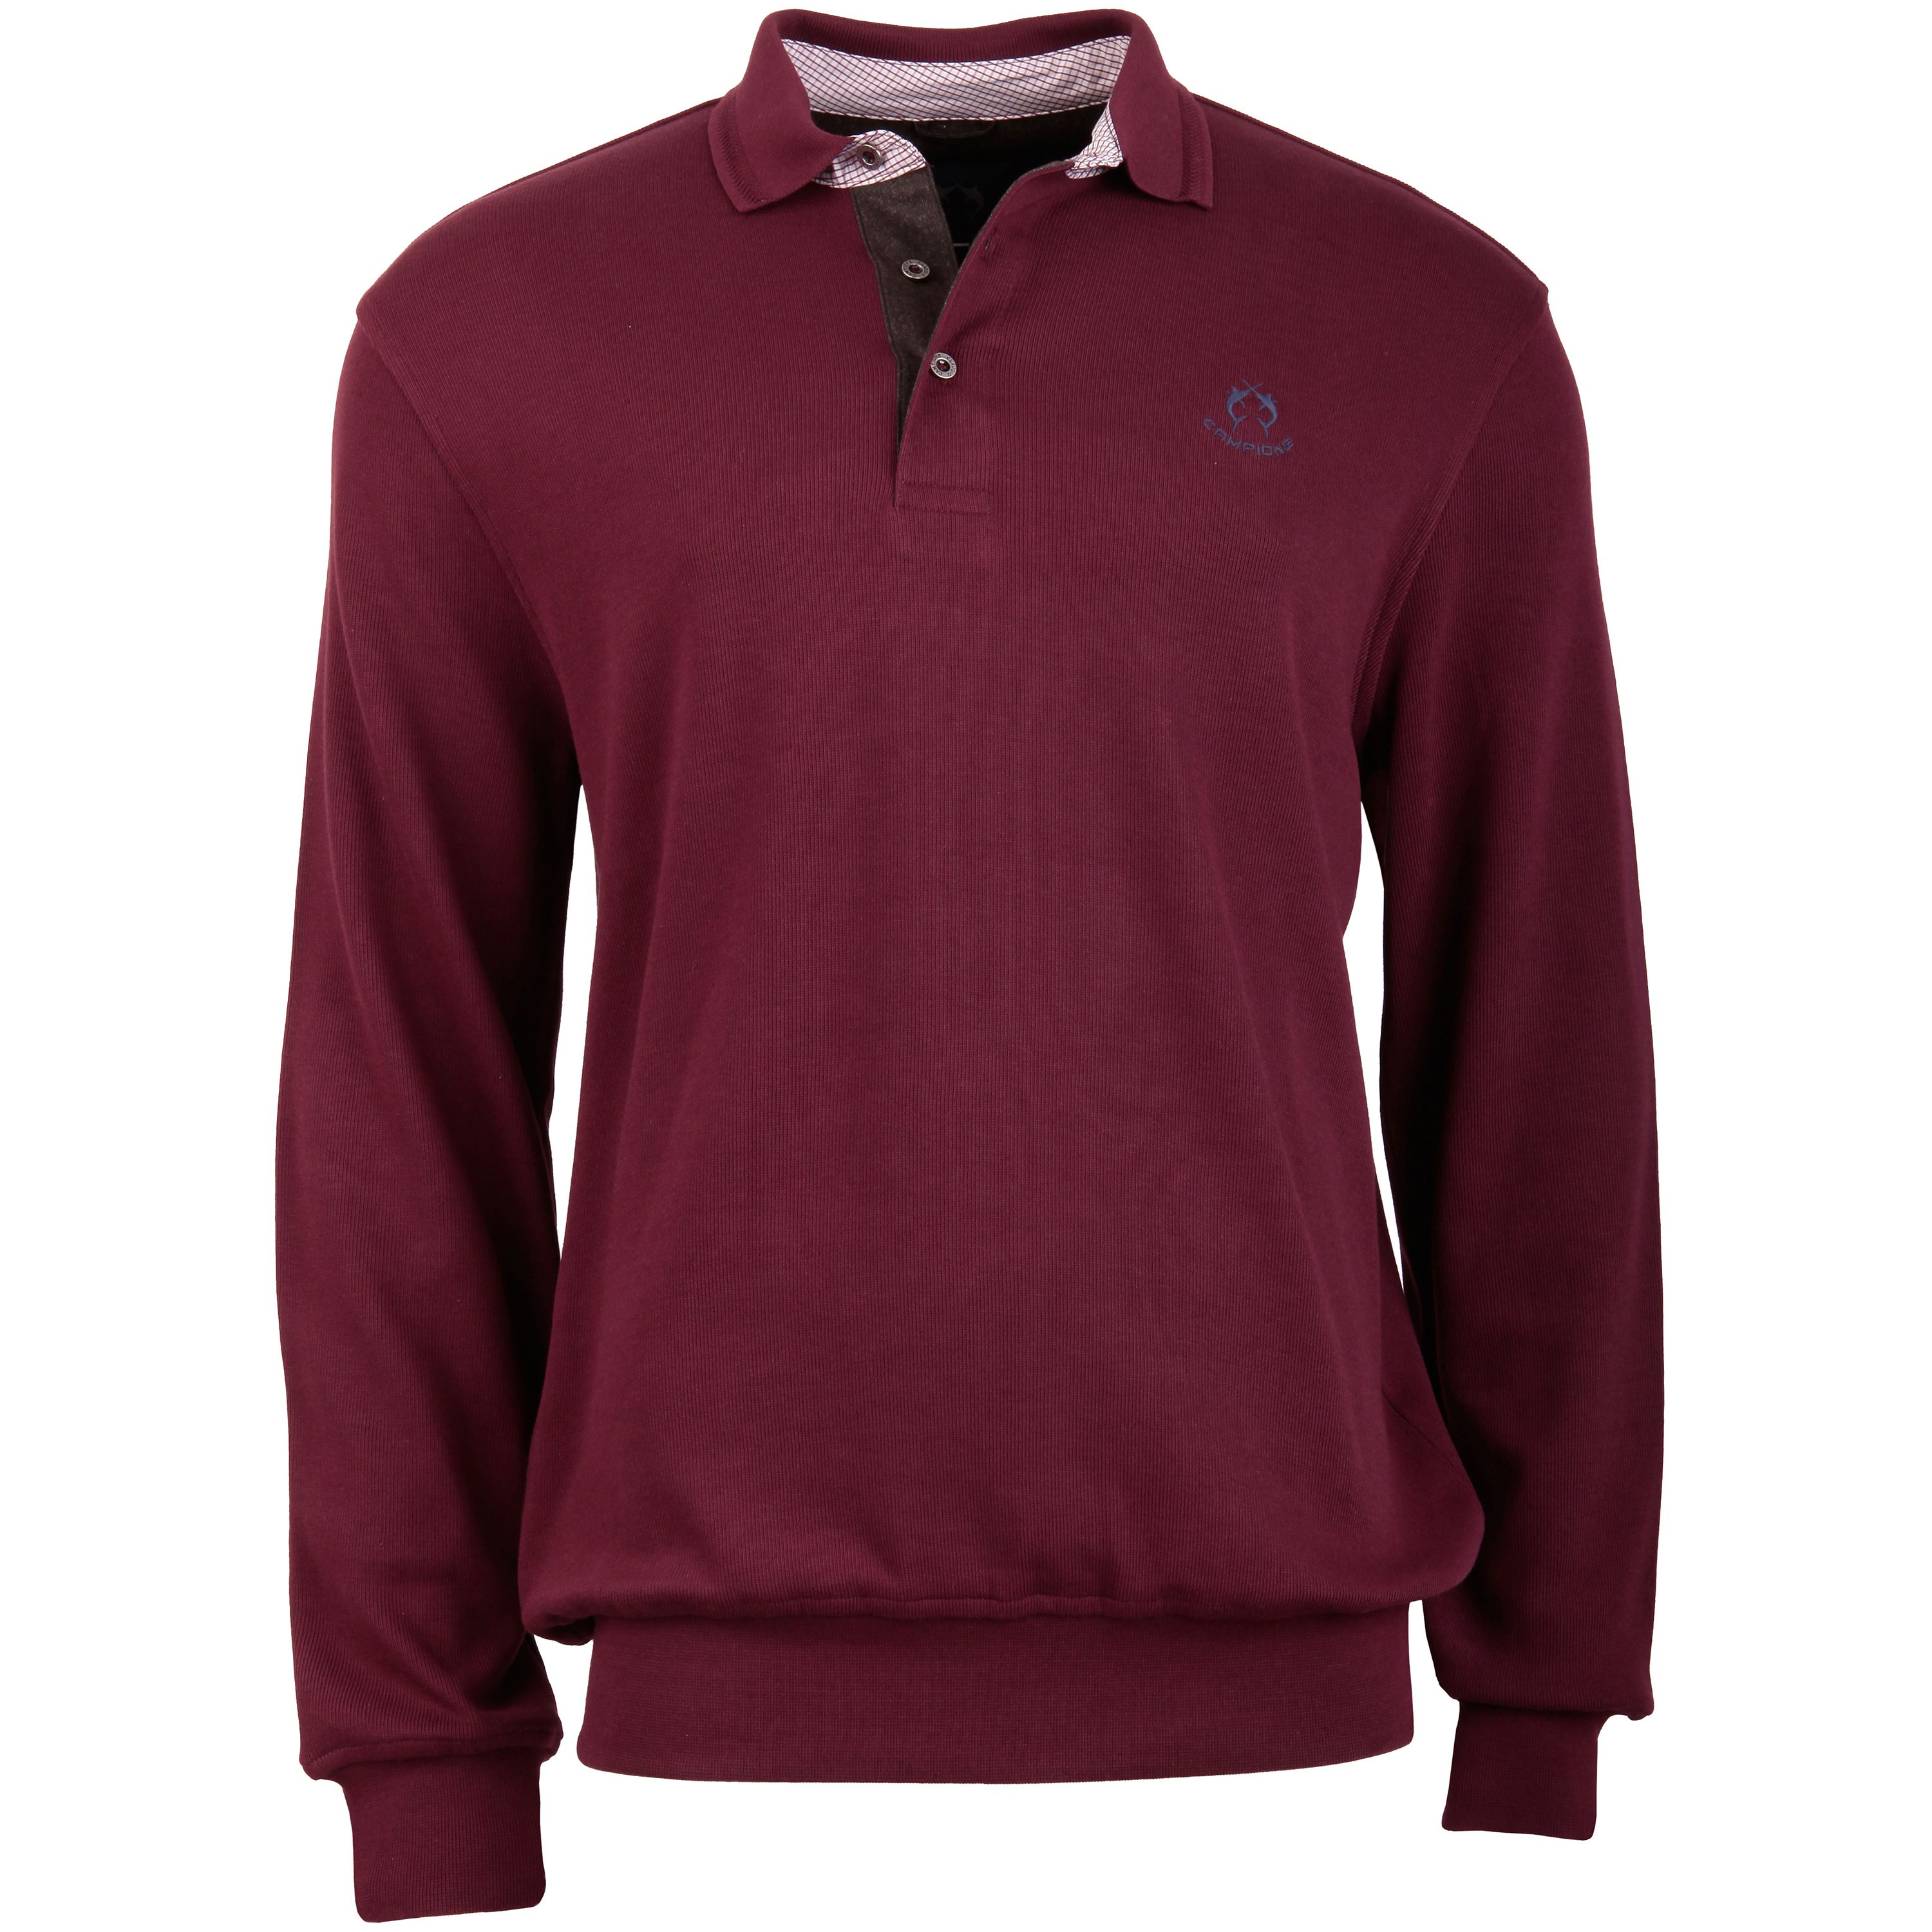 #Polosweater